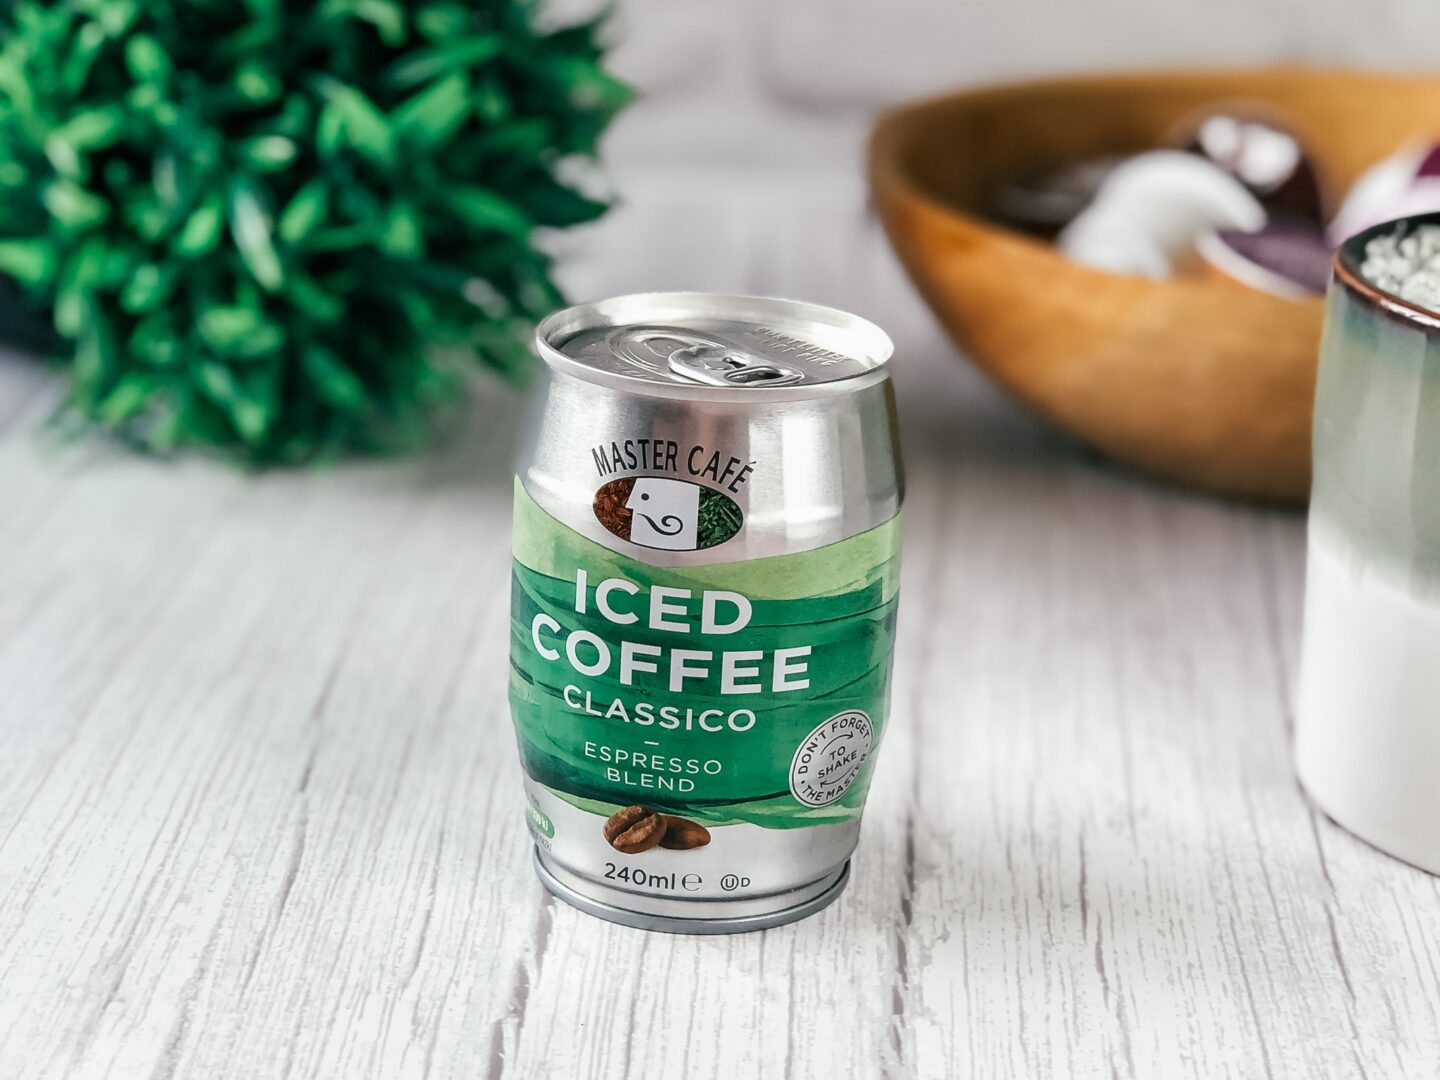 Master Cafe Iced Coffee Classico